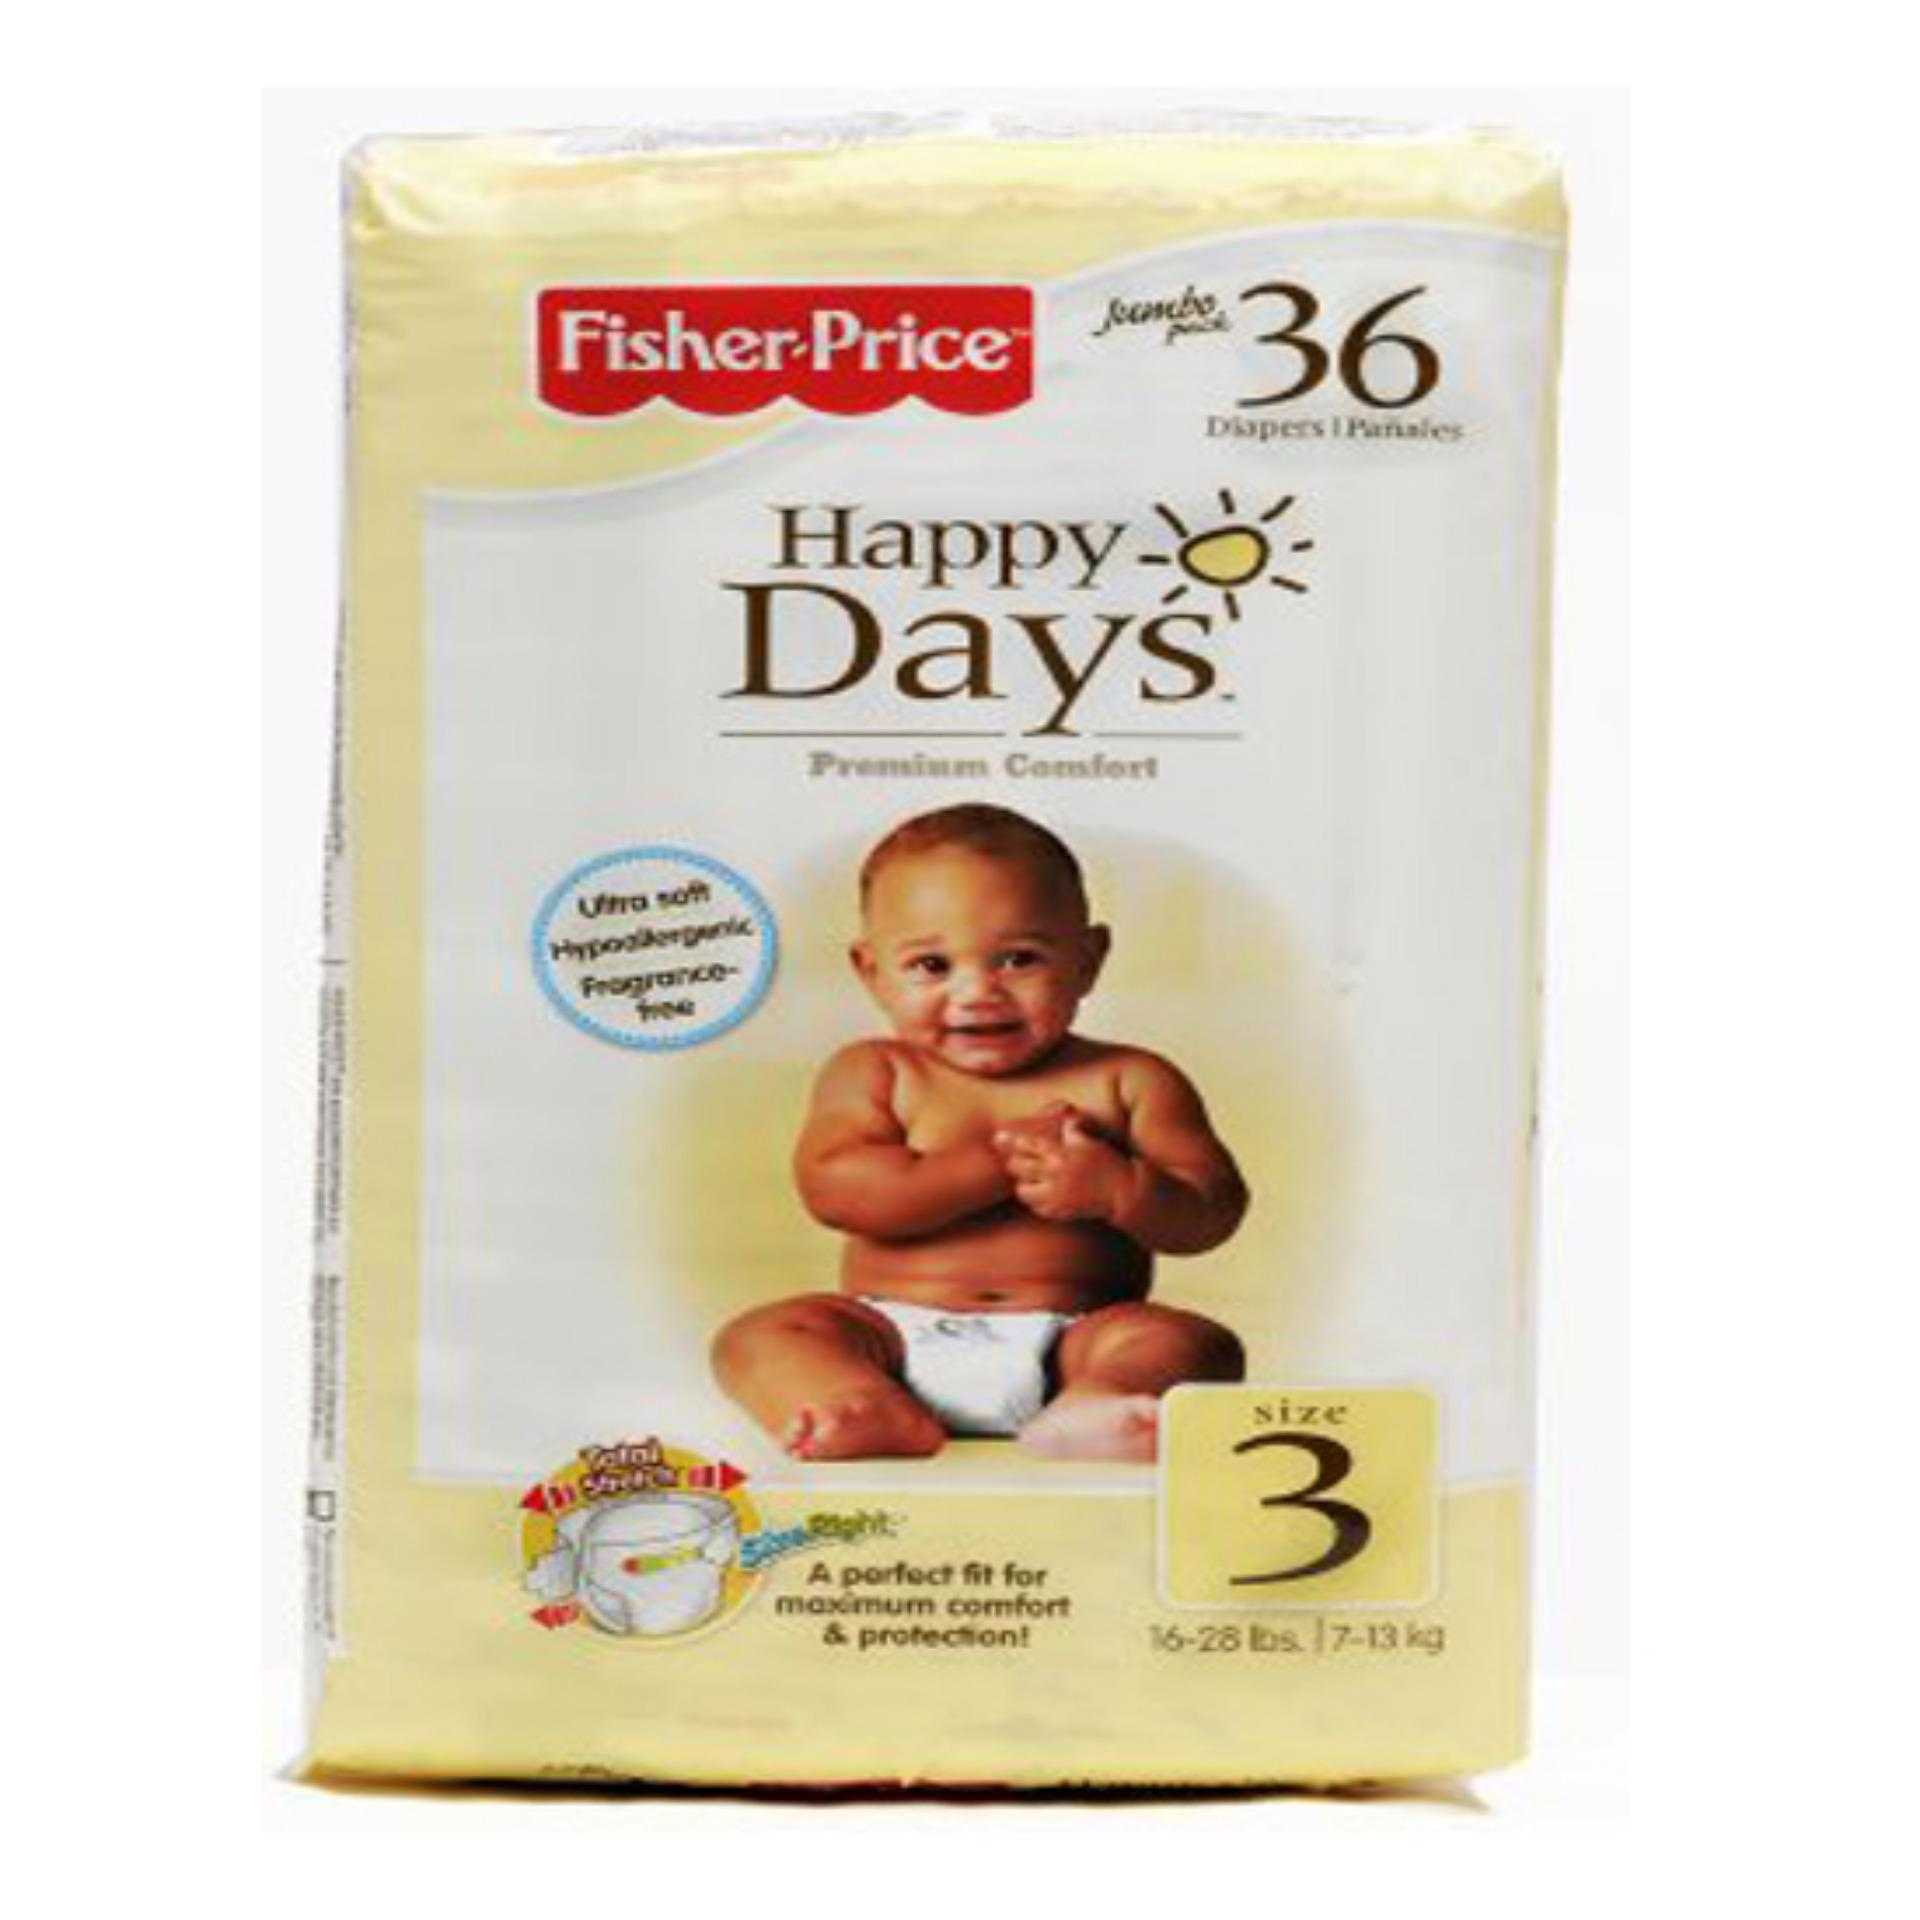 Jual Fisher Price Happy Days Diapers Fisher Price Di Indonesia